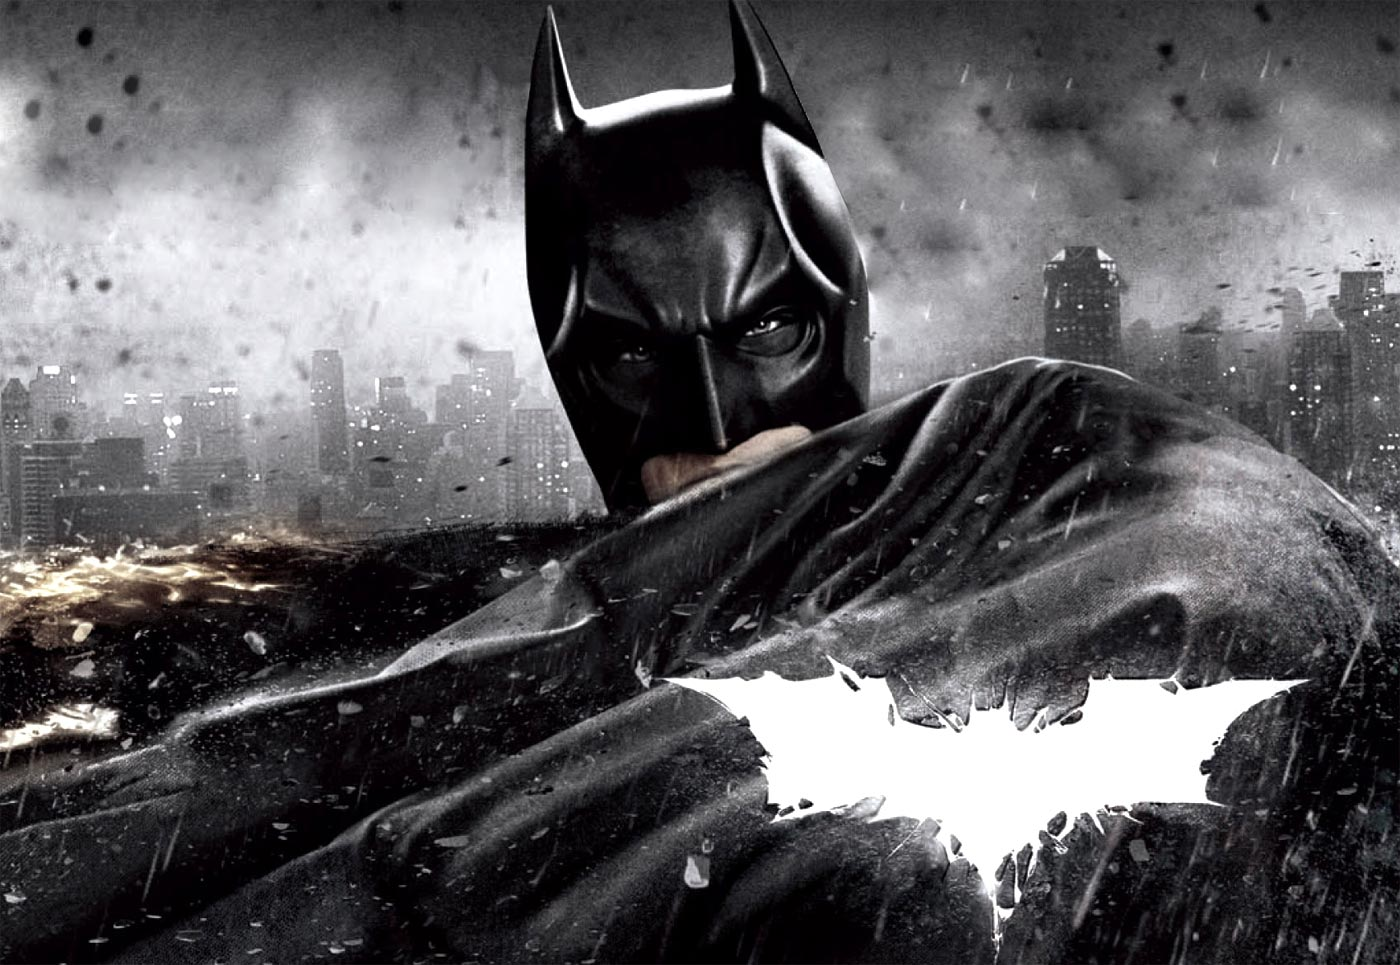 Batman: Dark Knight Rises (Video Review)